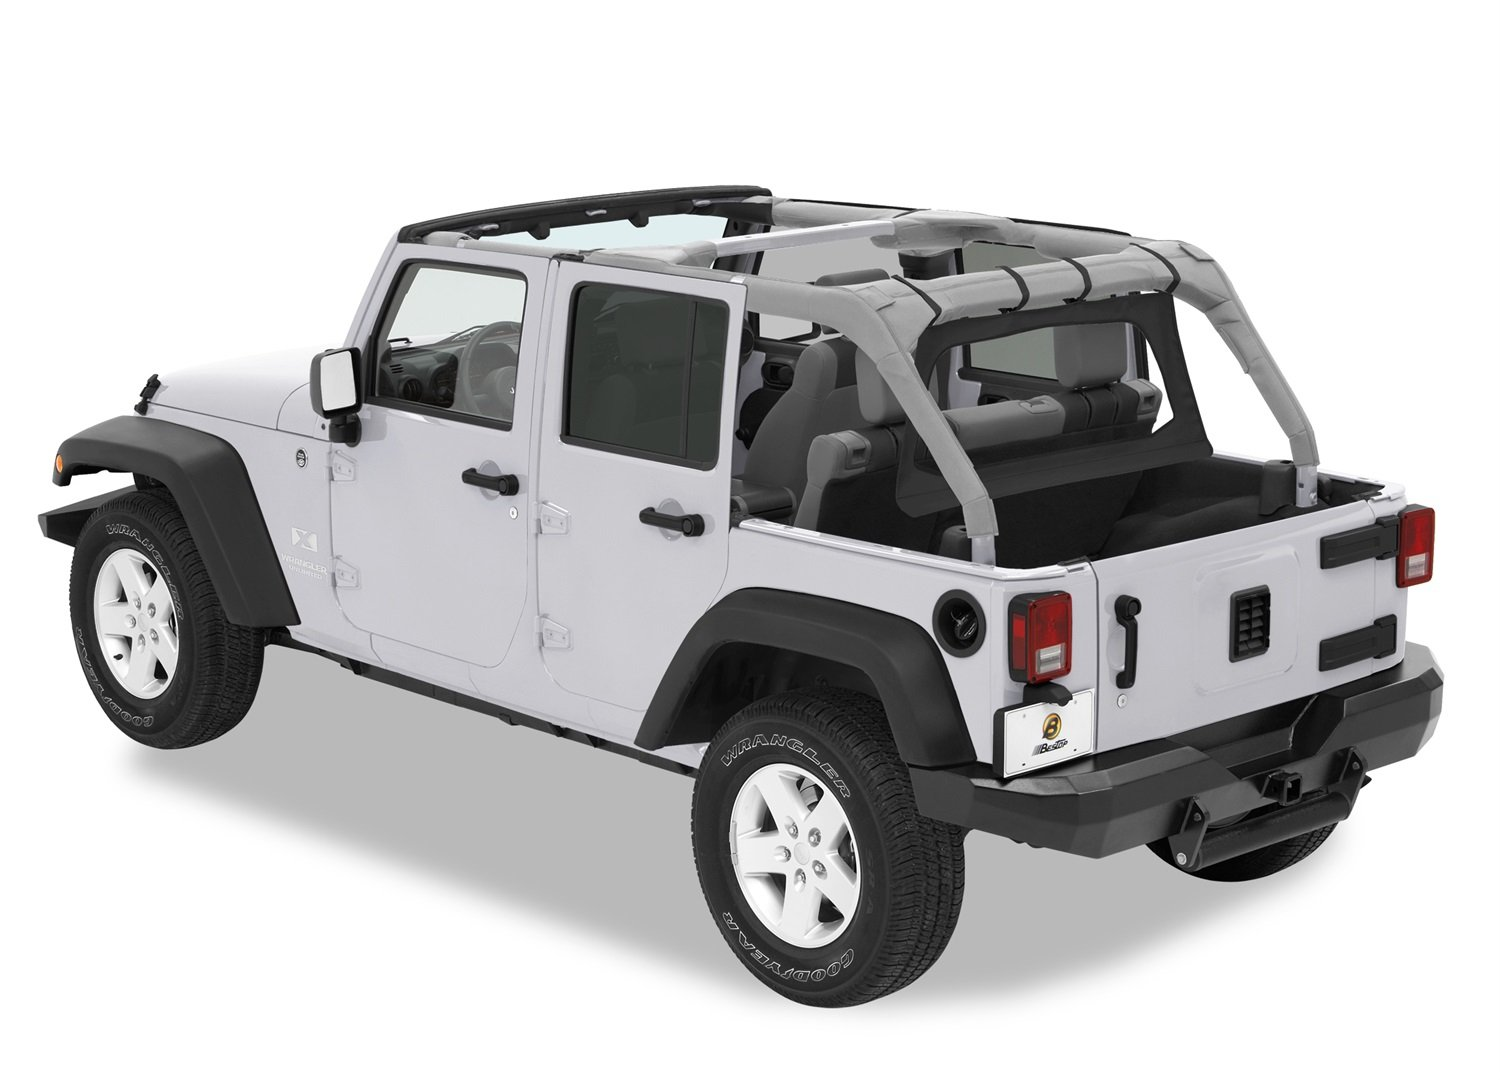 Amazon.com: Bestop 80039 35 Black Diamond Windjammer Wind Break For  2007 2018 Wrangler JK Unlimited: Automotive